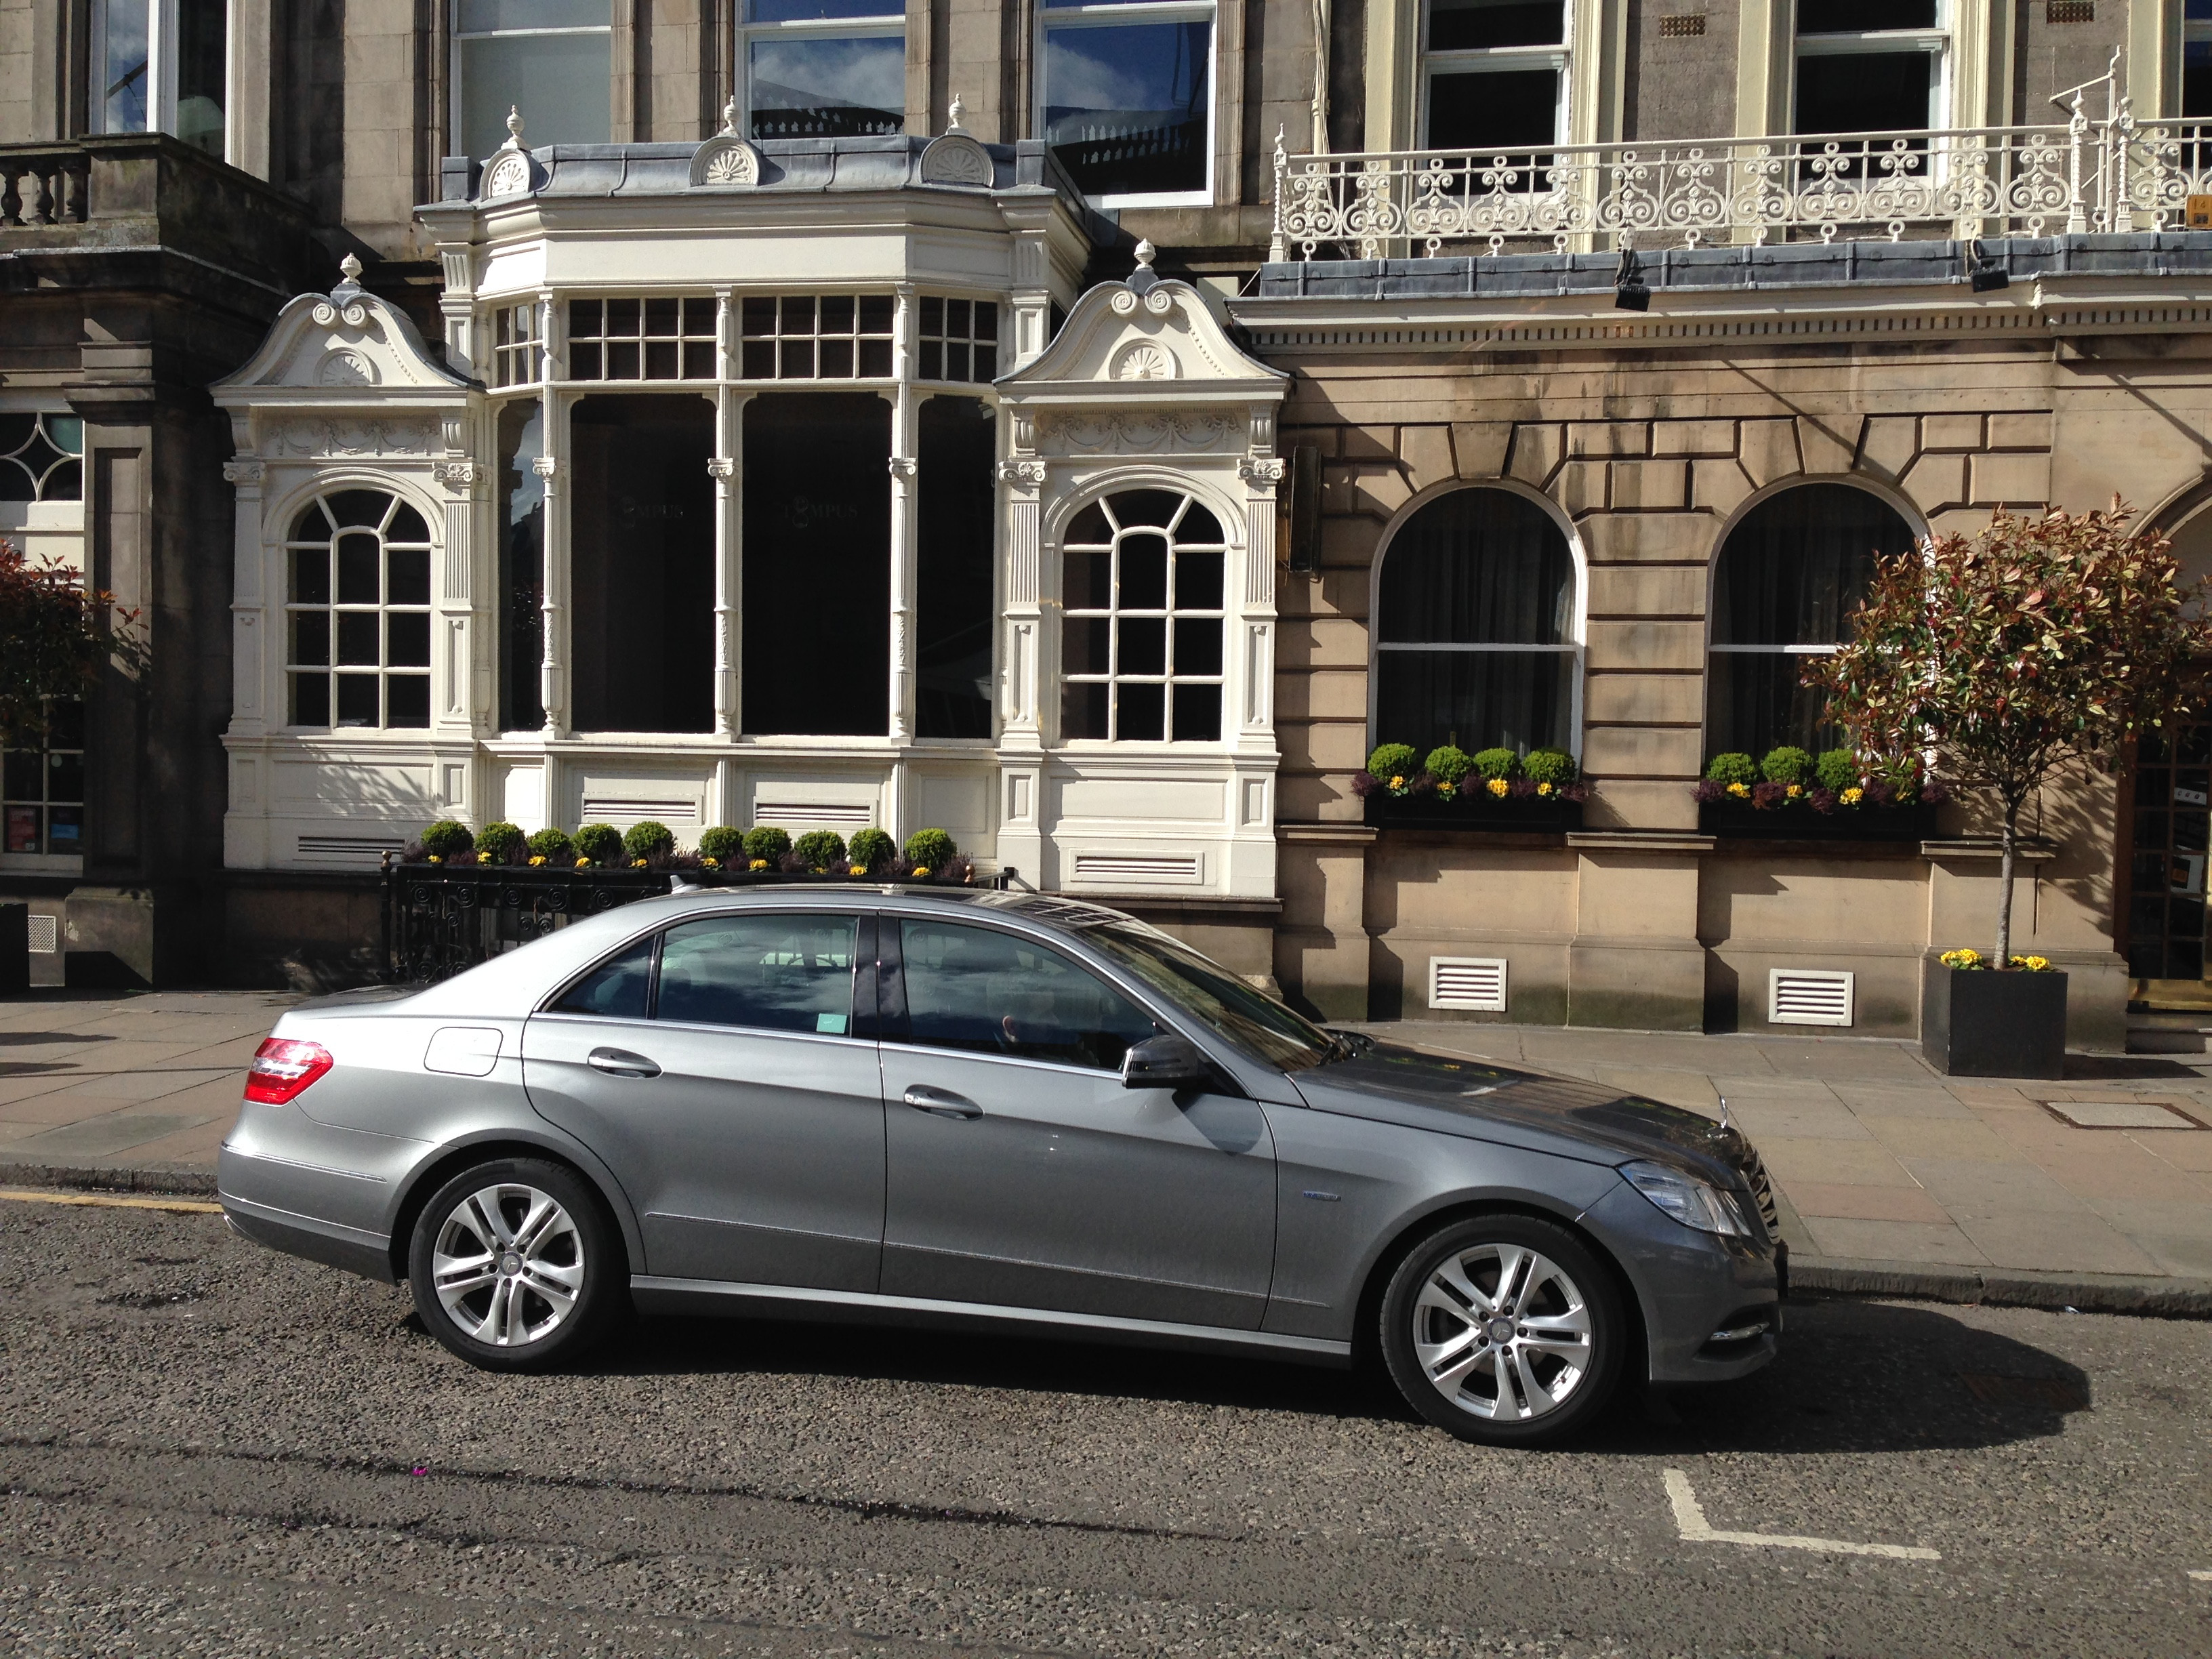 Edinburgh Chauffeur Drive Services Events Conference Specialists